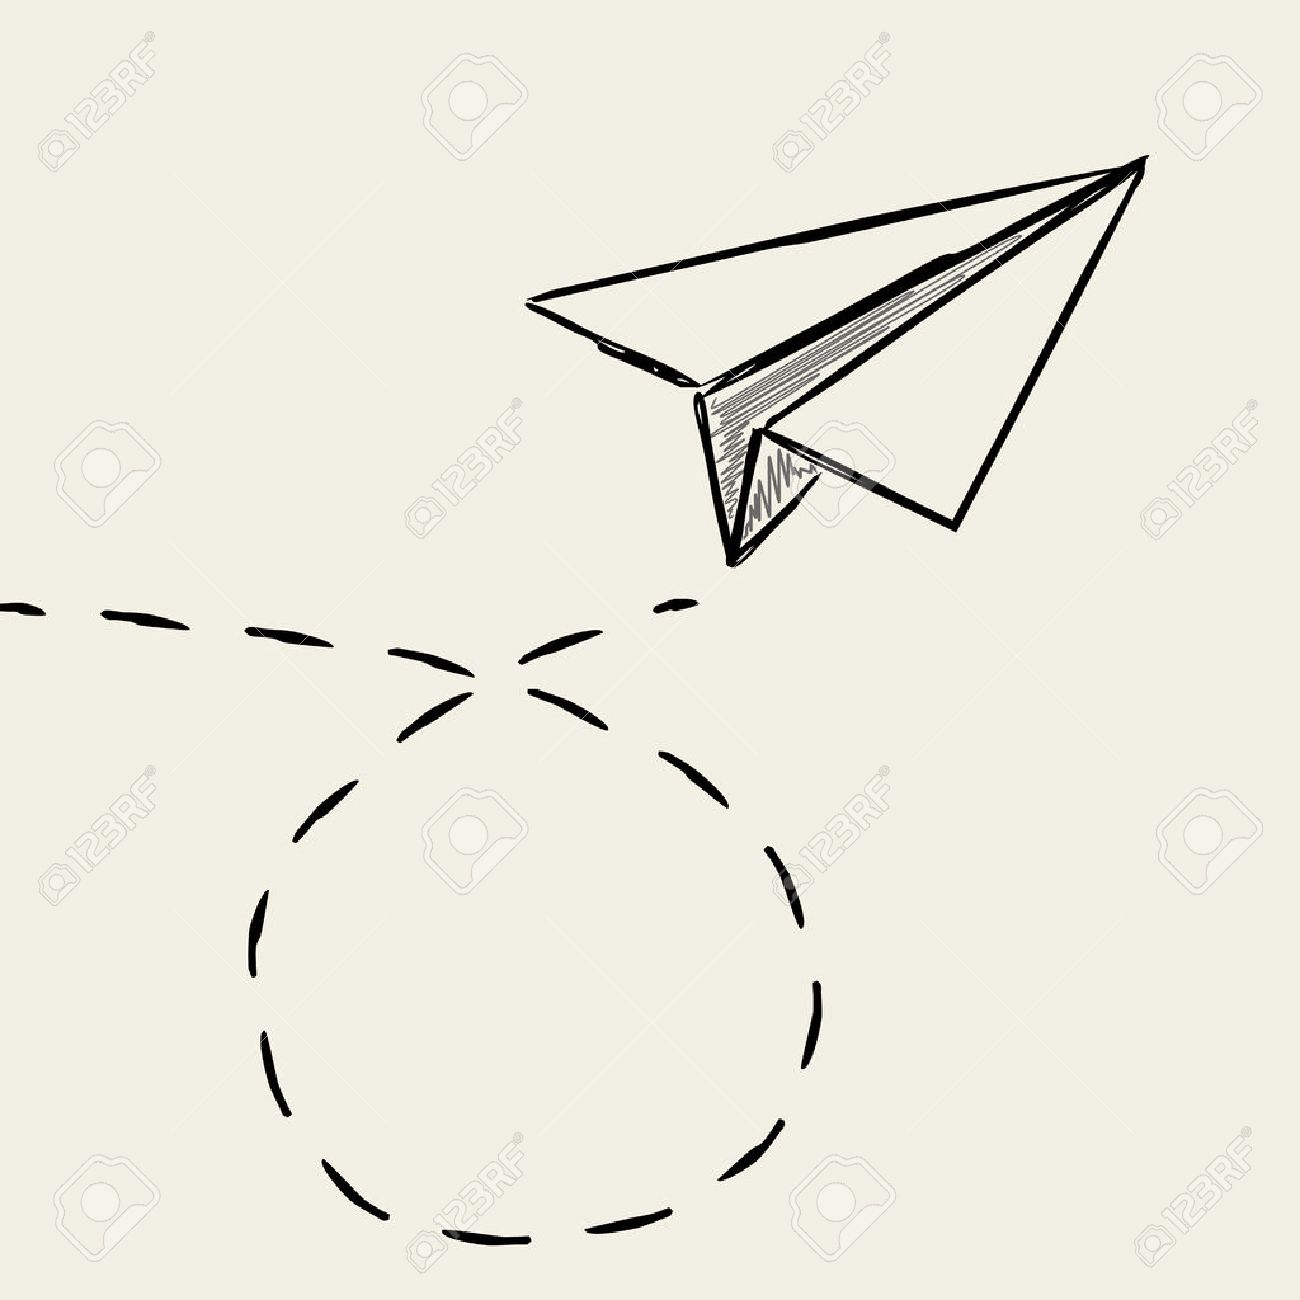 Paper Plane Drawing With Dashed Trace Line Royalty Free Cliparts